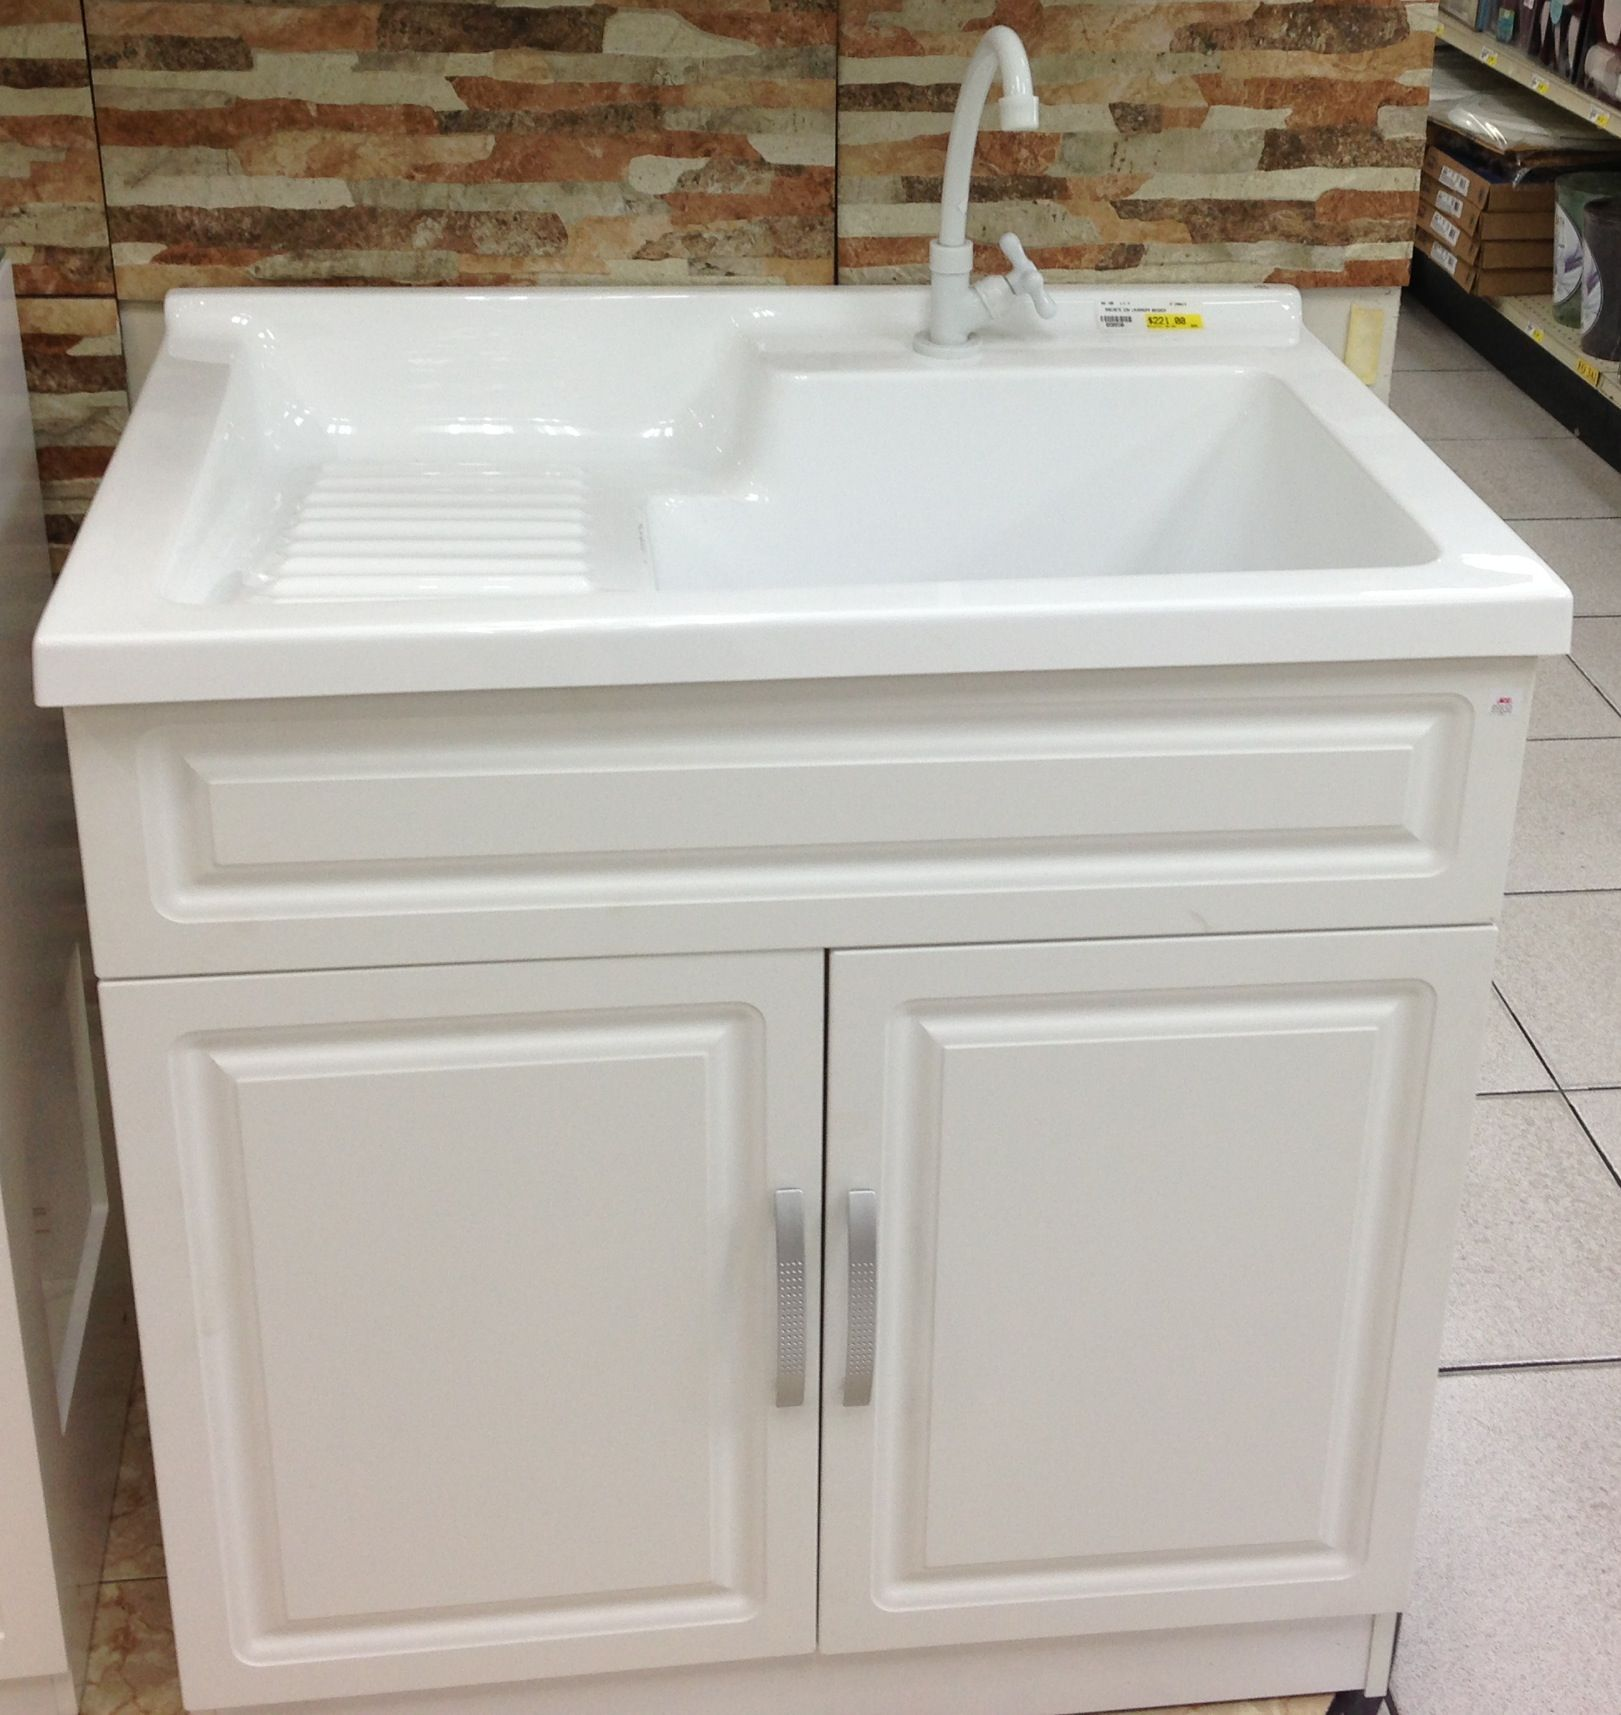 Functional Laundry Sink Corstone Self At Lowes For 145